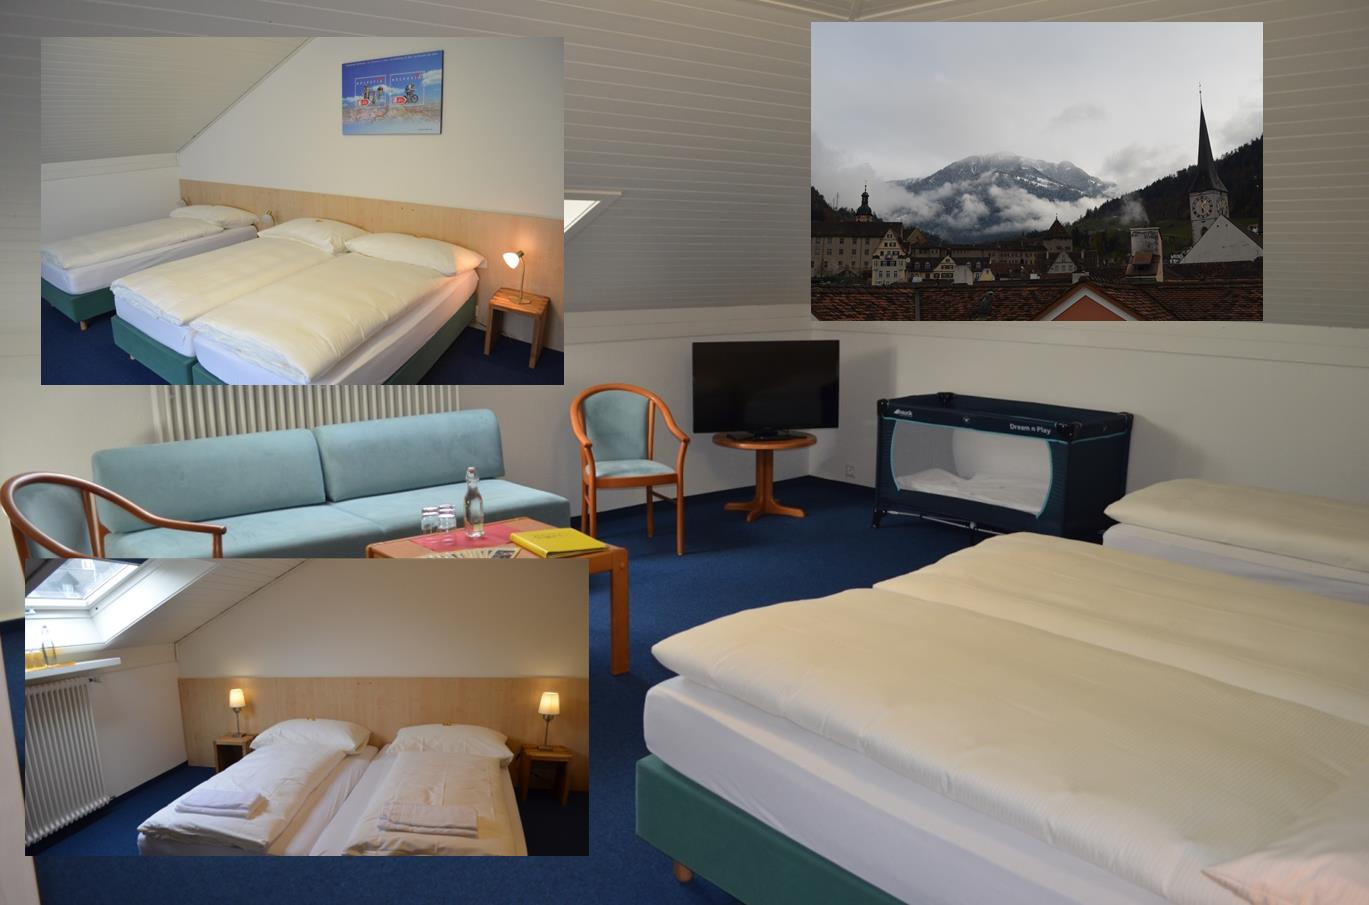 Hotel Post in Chur, Schweiz - Hotel Post Chur